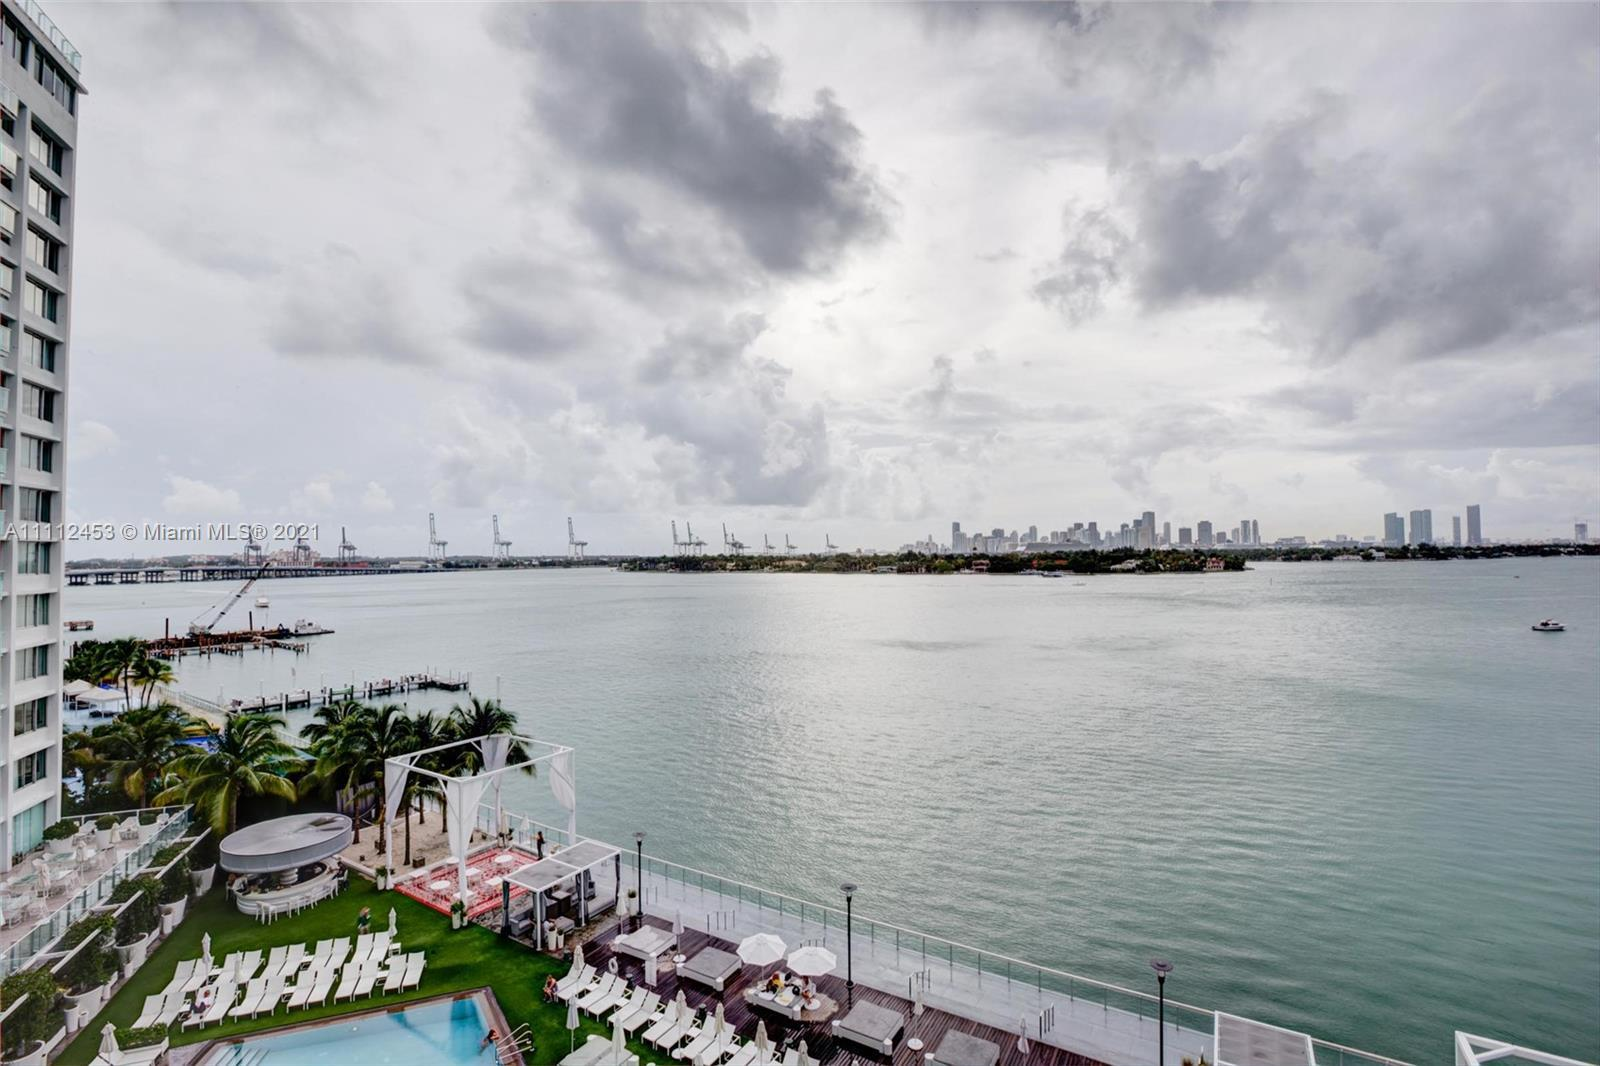 TOTALLY LEGAL SHORT-TERM RENT IN A HIGH-CLASS BUILDING. OPEN BAY AND MIAMI SKYLINE VIEW. THIS LARGE